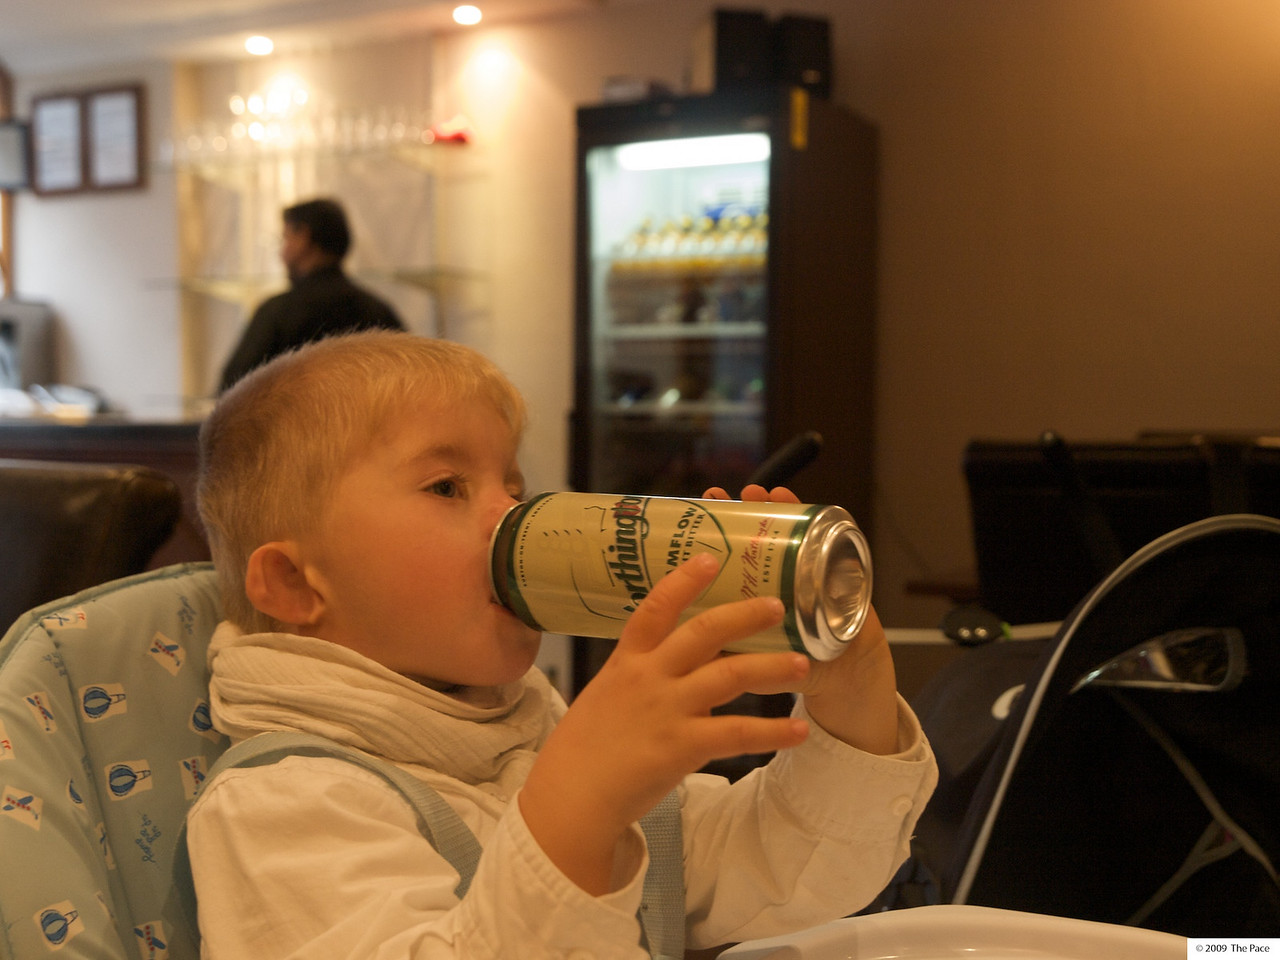 Monday 11th Oct 2009 - Cai starts drinking at the most inappropriate time